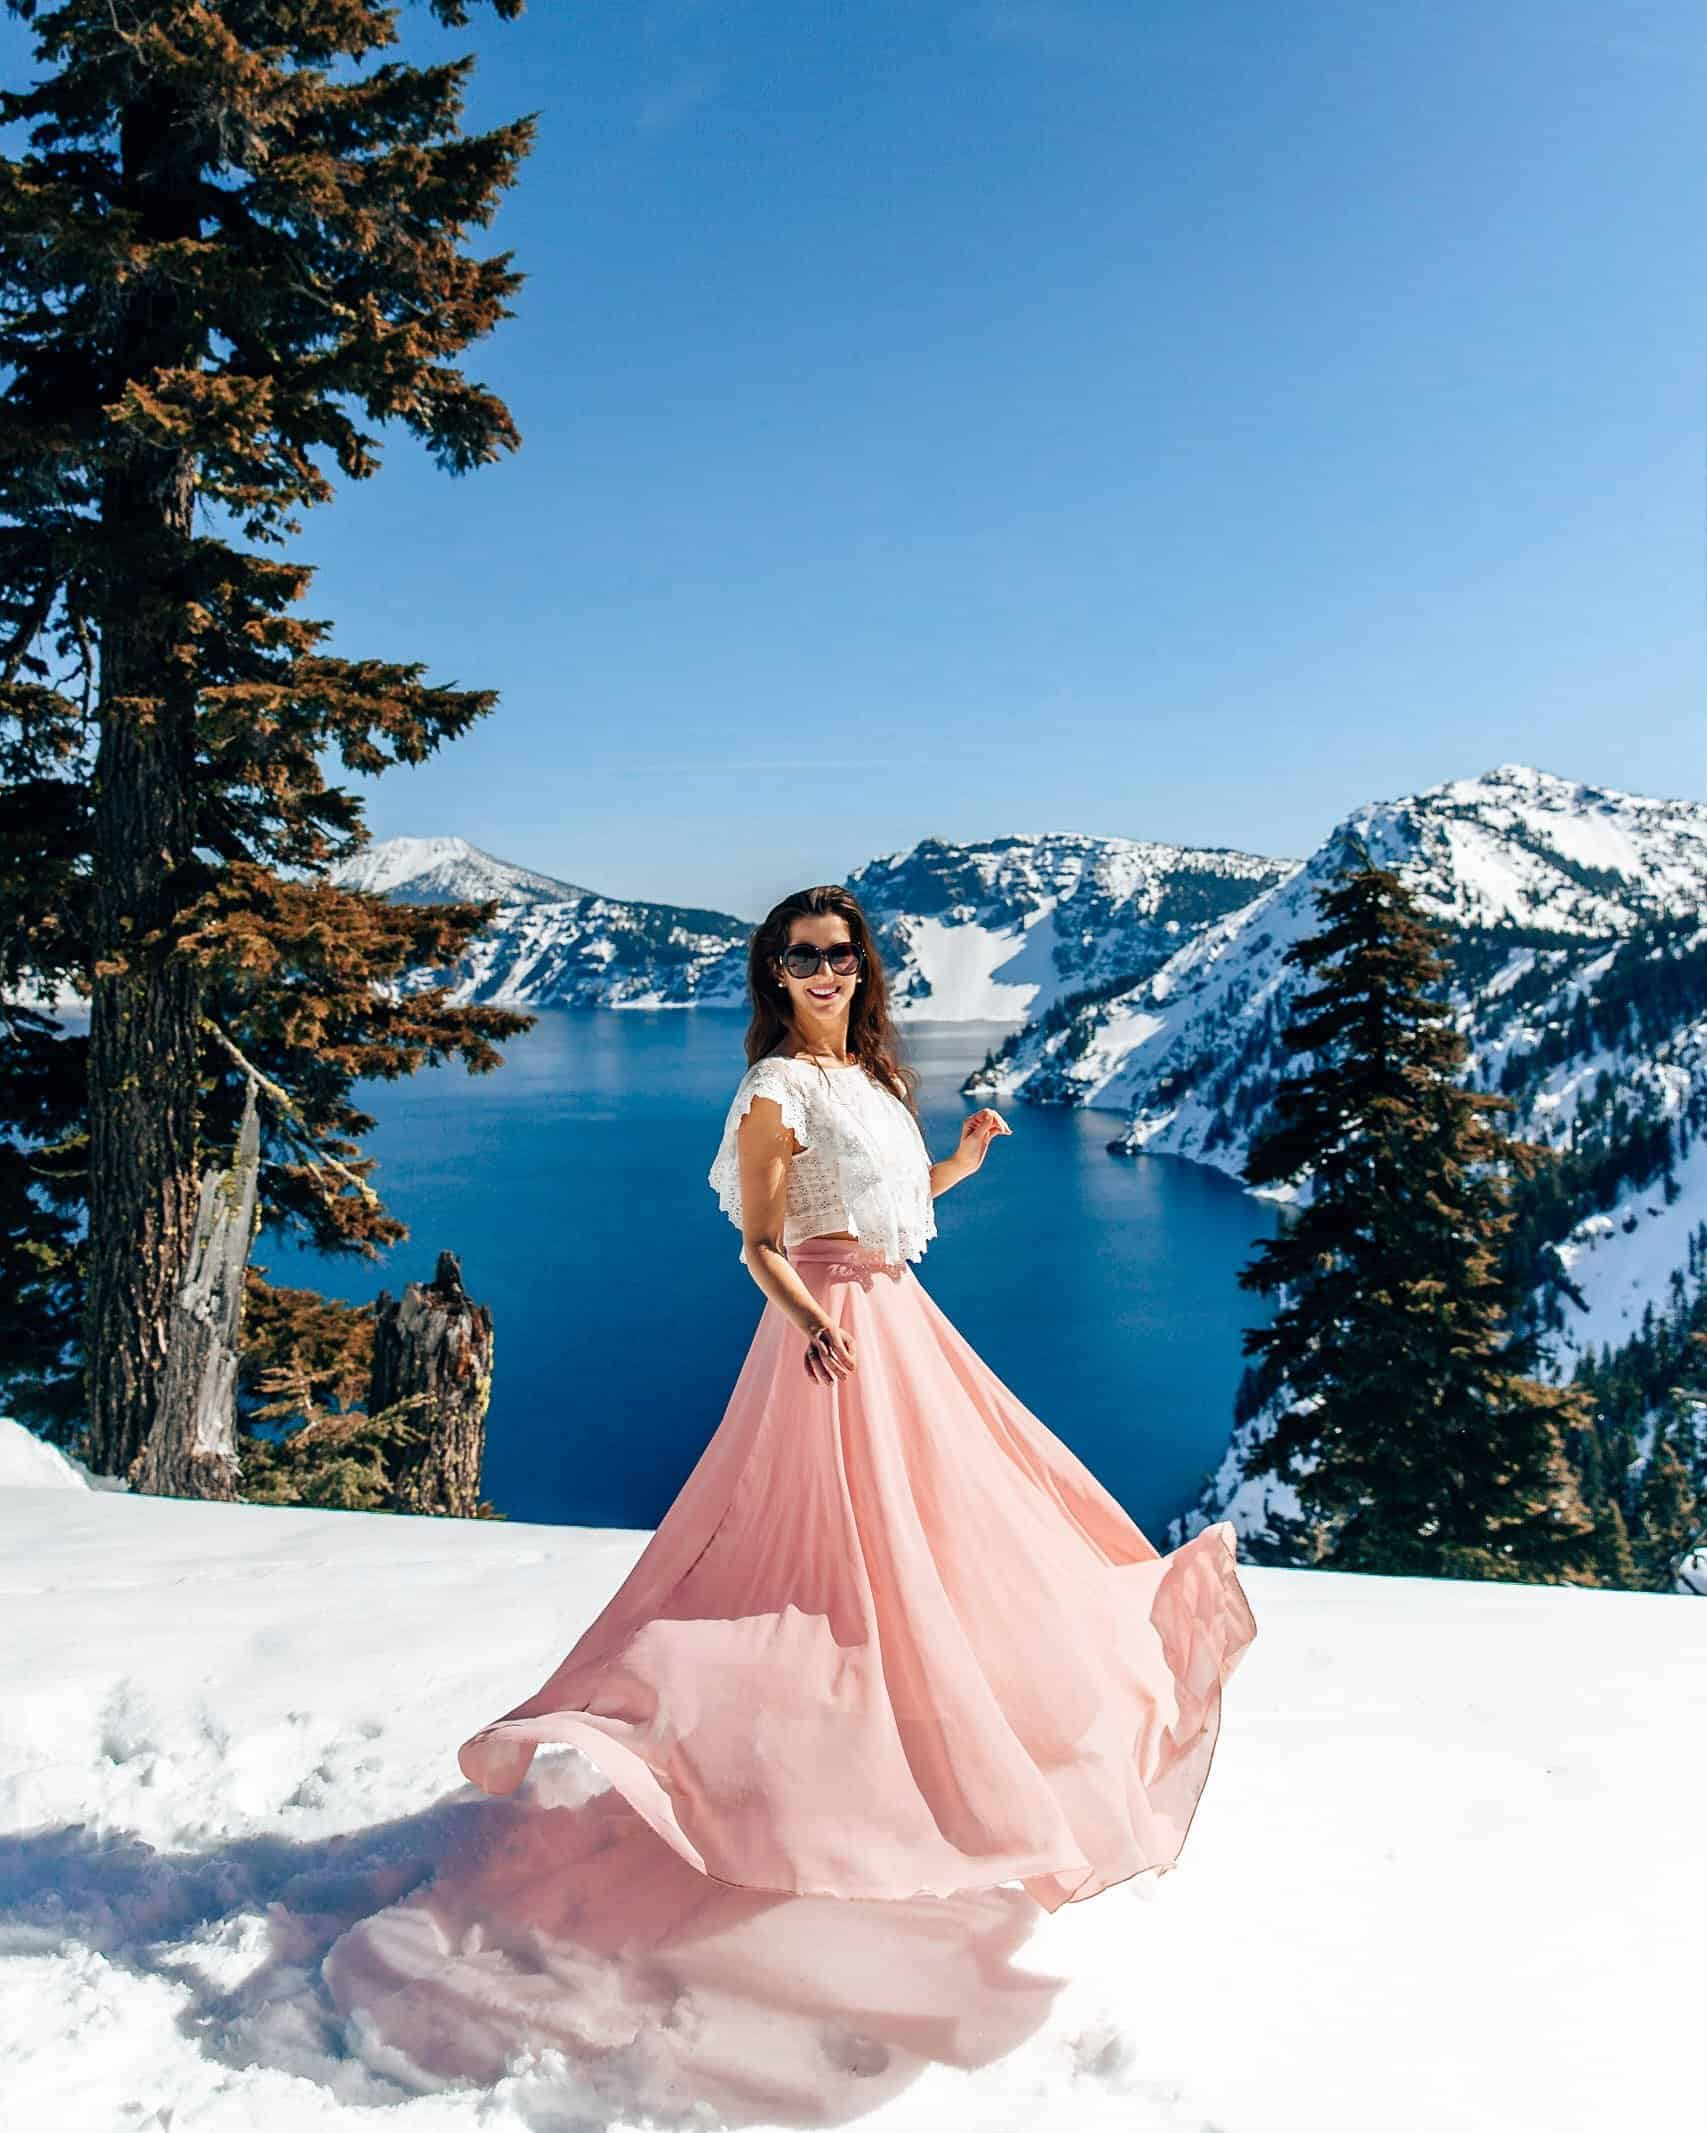 Twirling at Crater Lake - The Next Trip